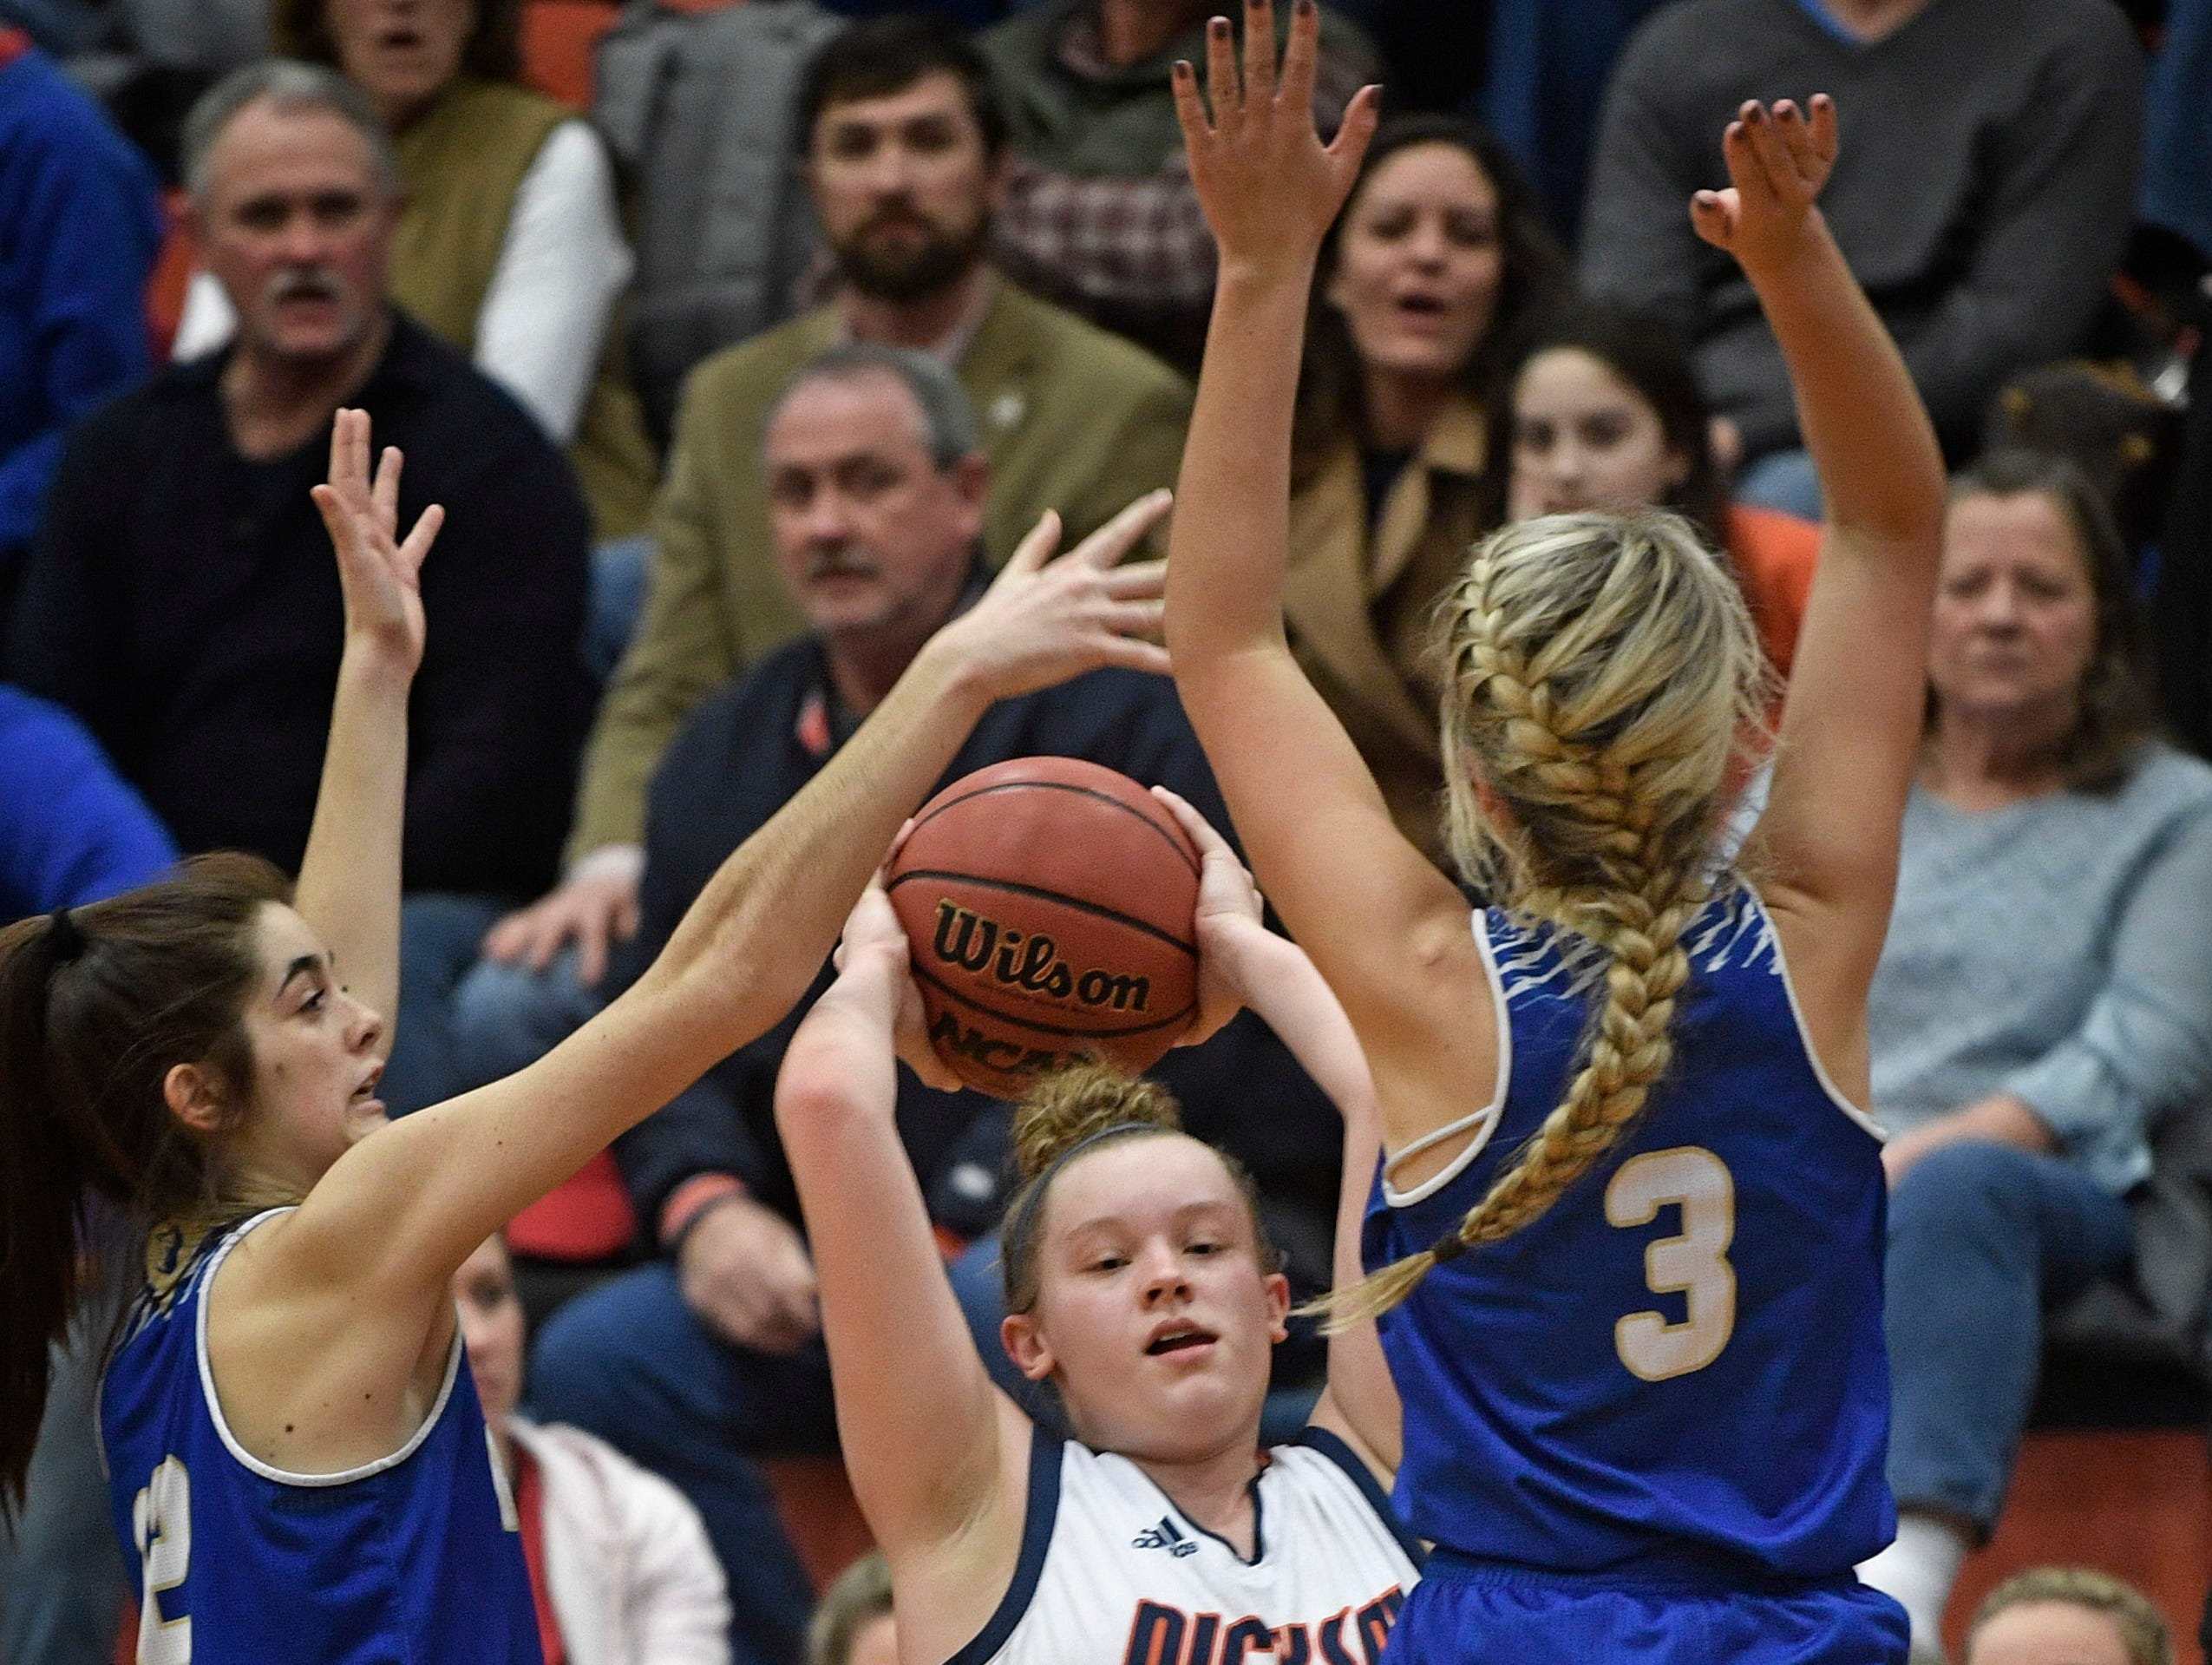 Olivia Rhinehart, 21, feels the pressure from defenders as Dickson plays Brentwood in the District 11-AAA girls basketball championship Monday, Feb. 18, 2019, in Dickson, Tenn.